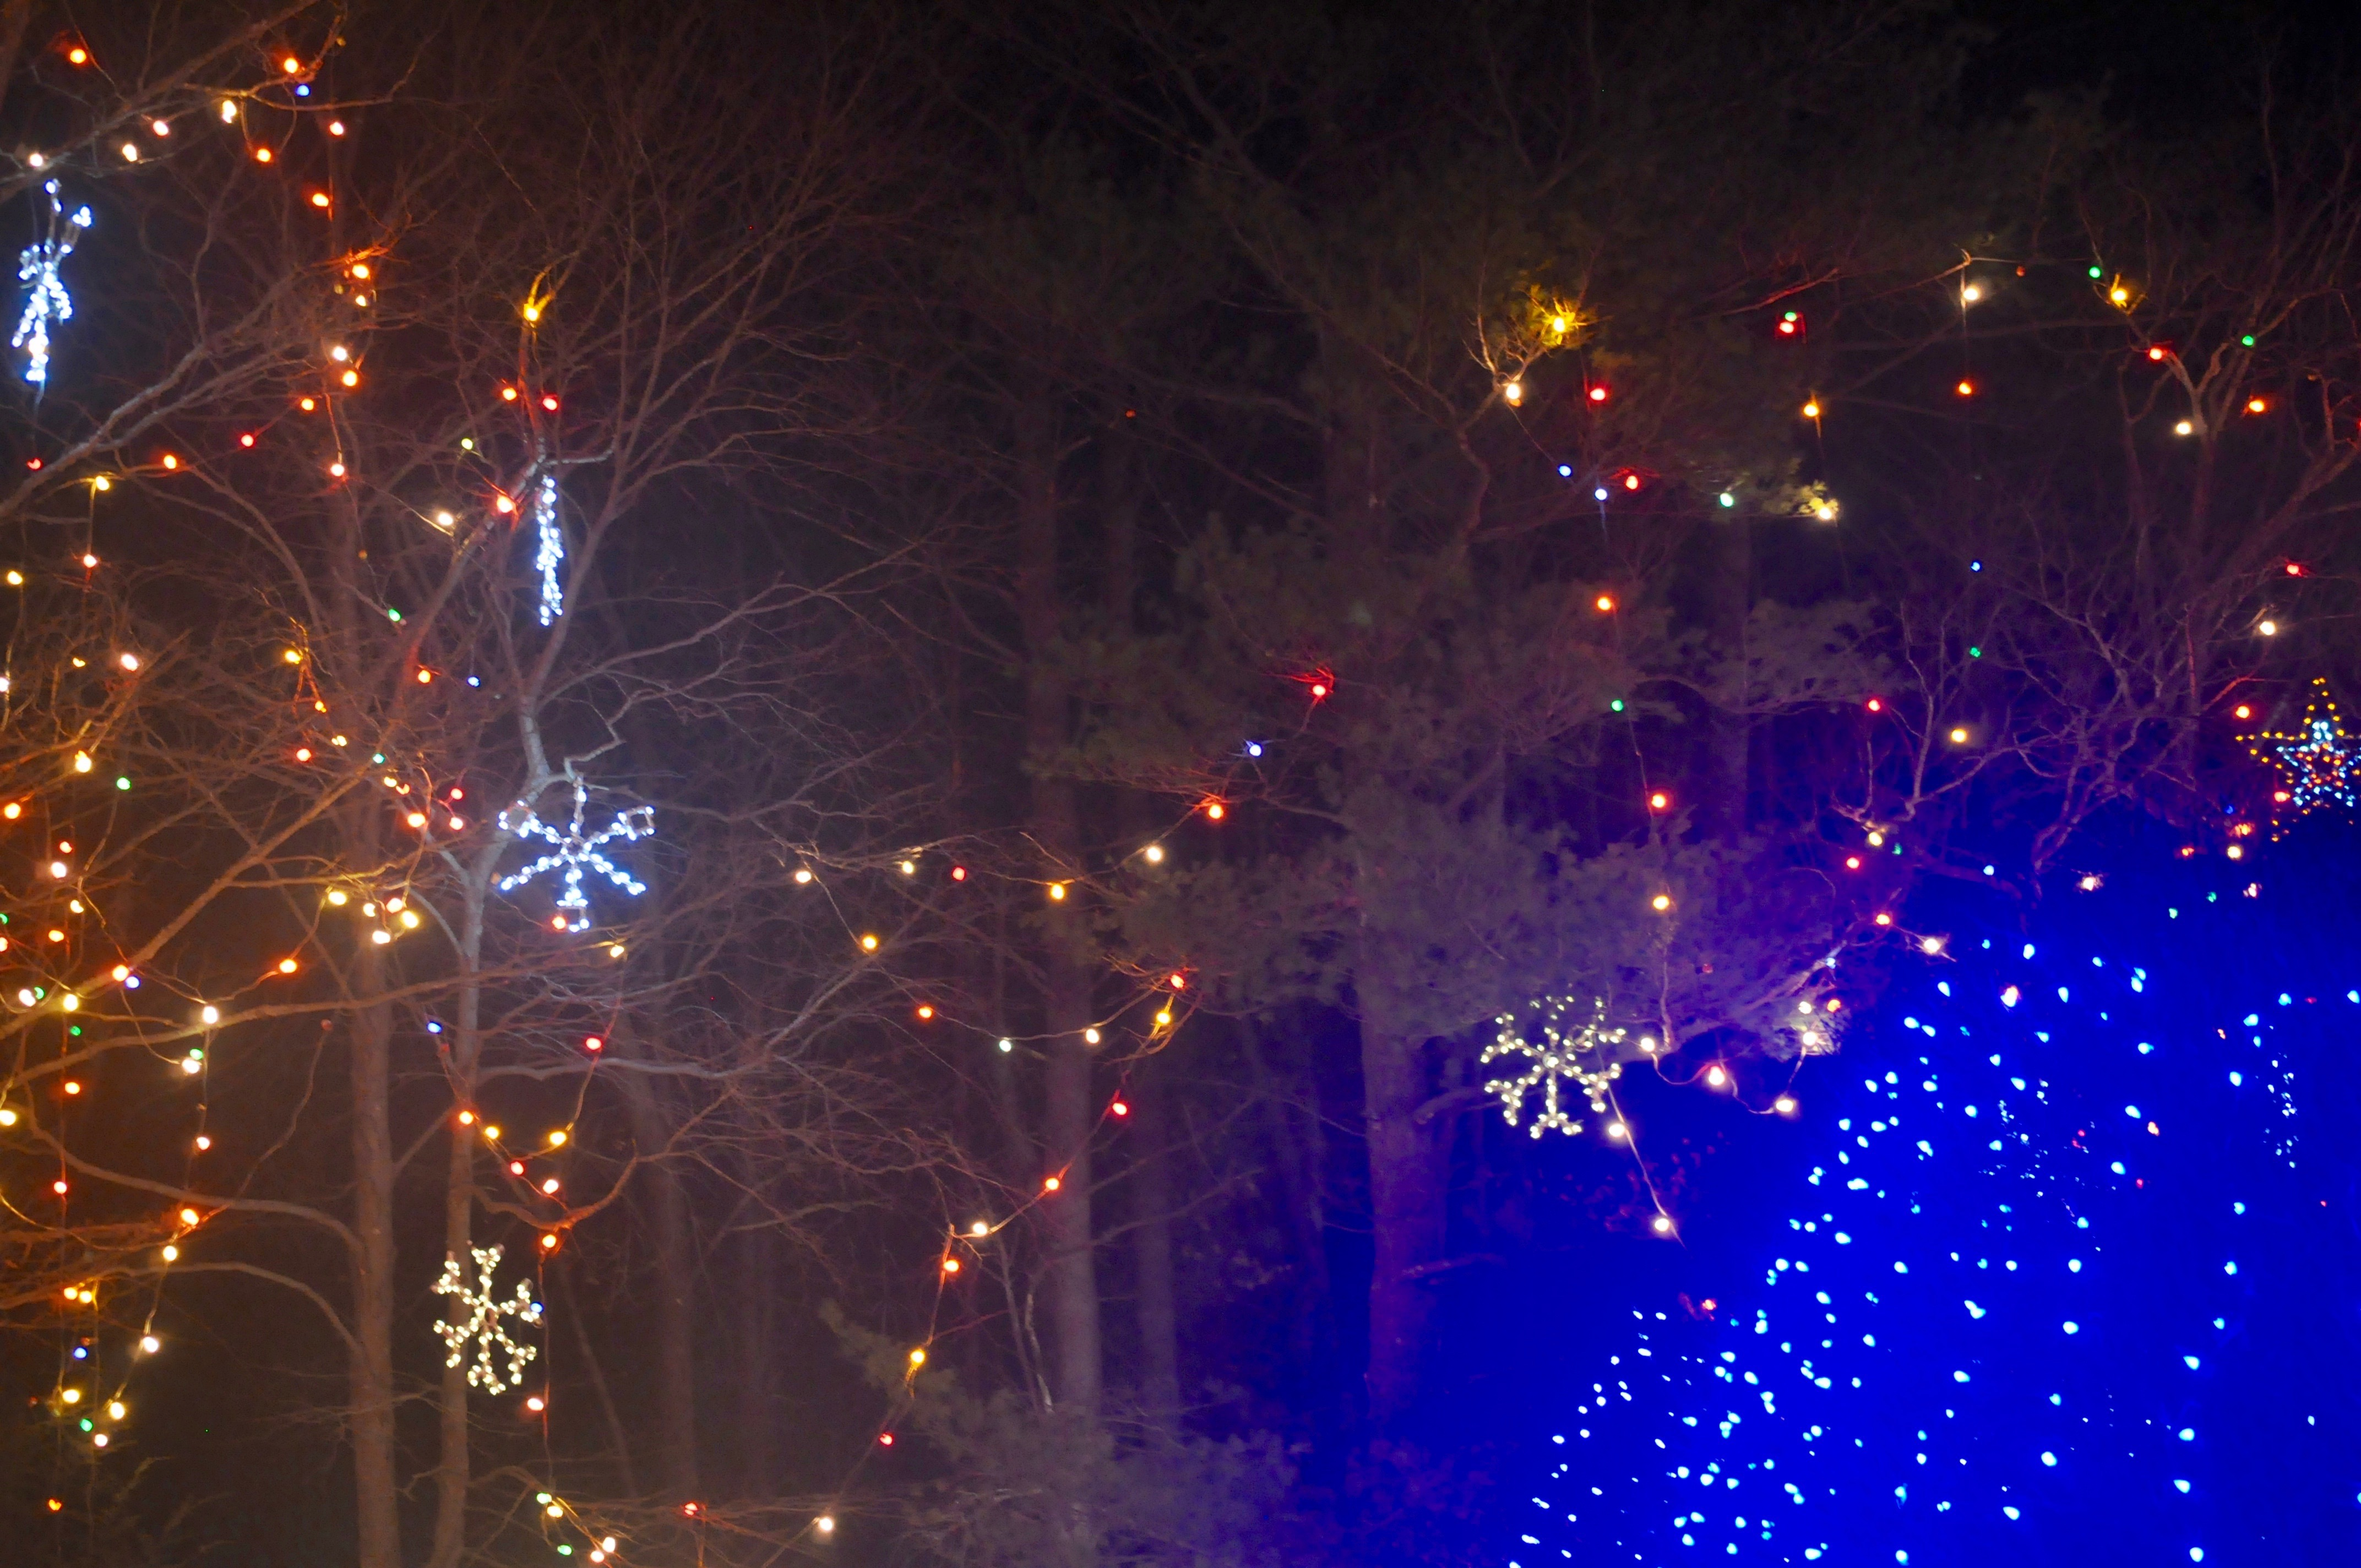 2015-12-19 - Our Lady of La Sallette Christmas Lights, Attleboro, MA